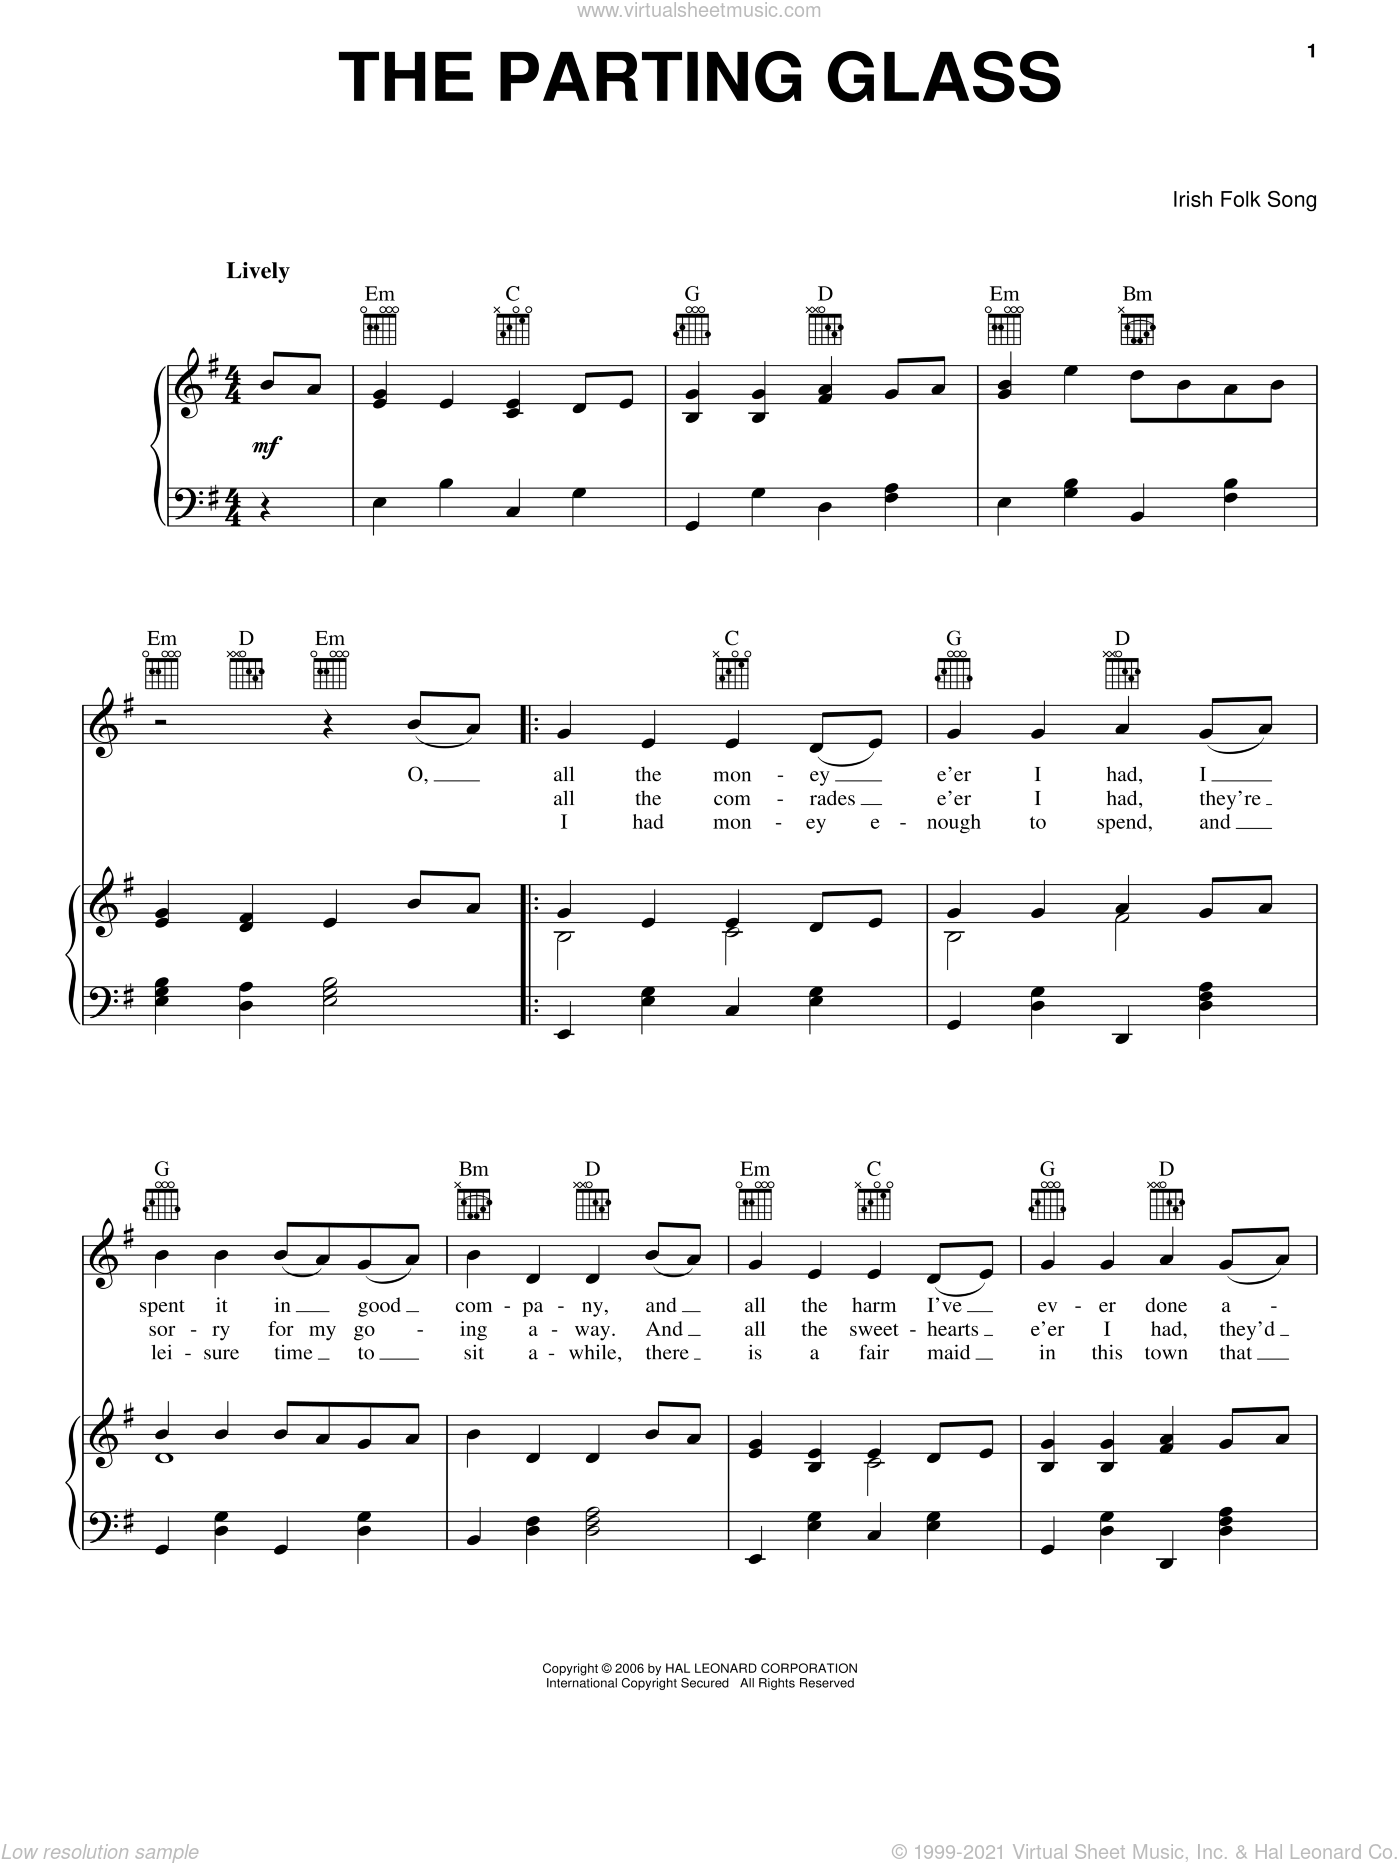 The Parting Glass sheet music for voice, piano or guitar. Score Image Preview.